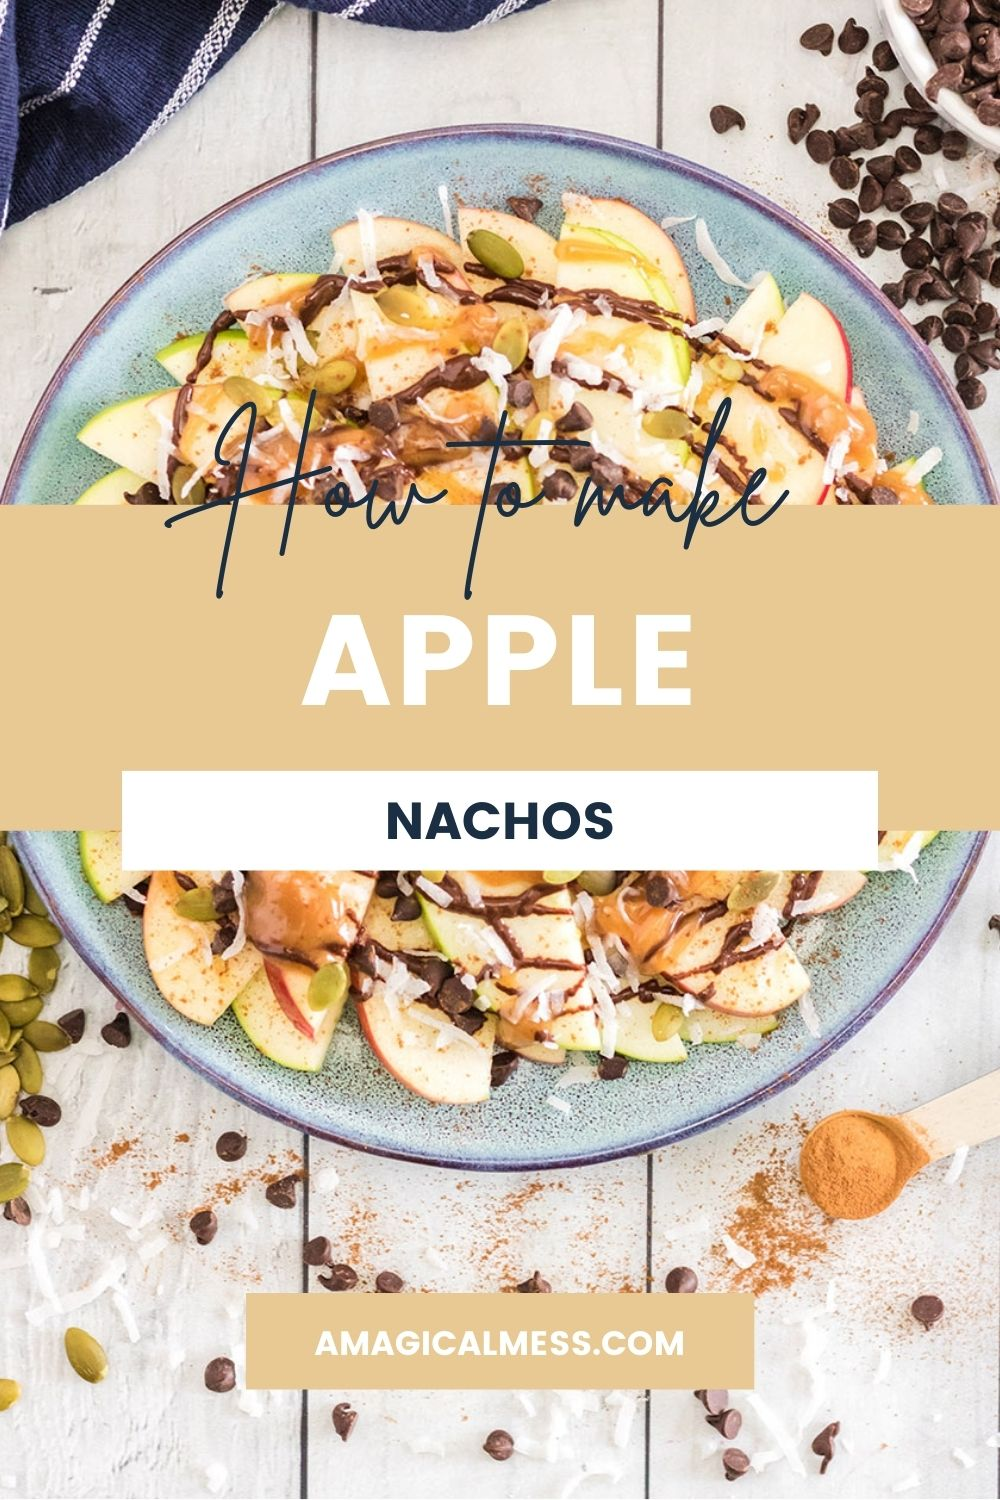 A plate full of apple slices covered in toppings.